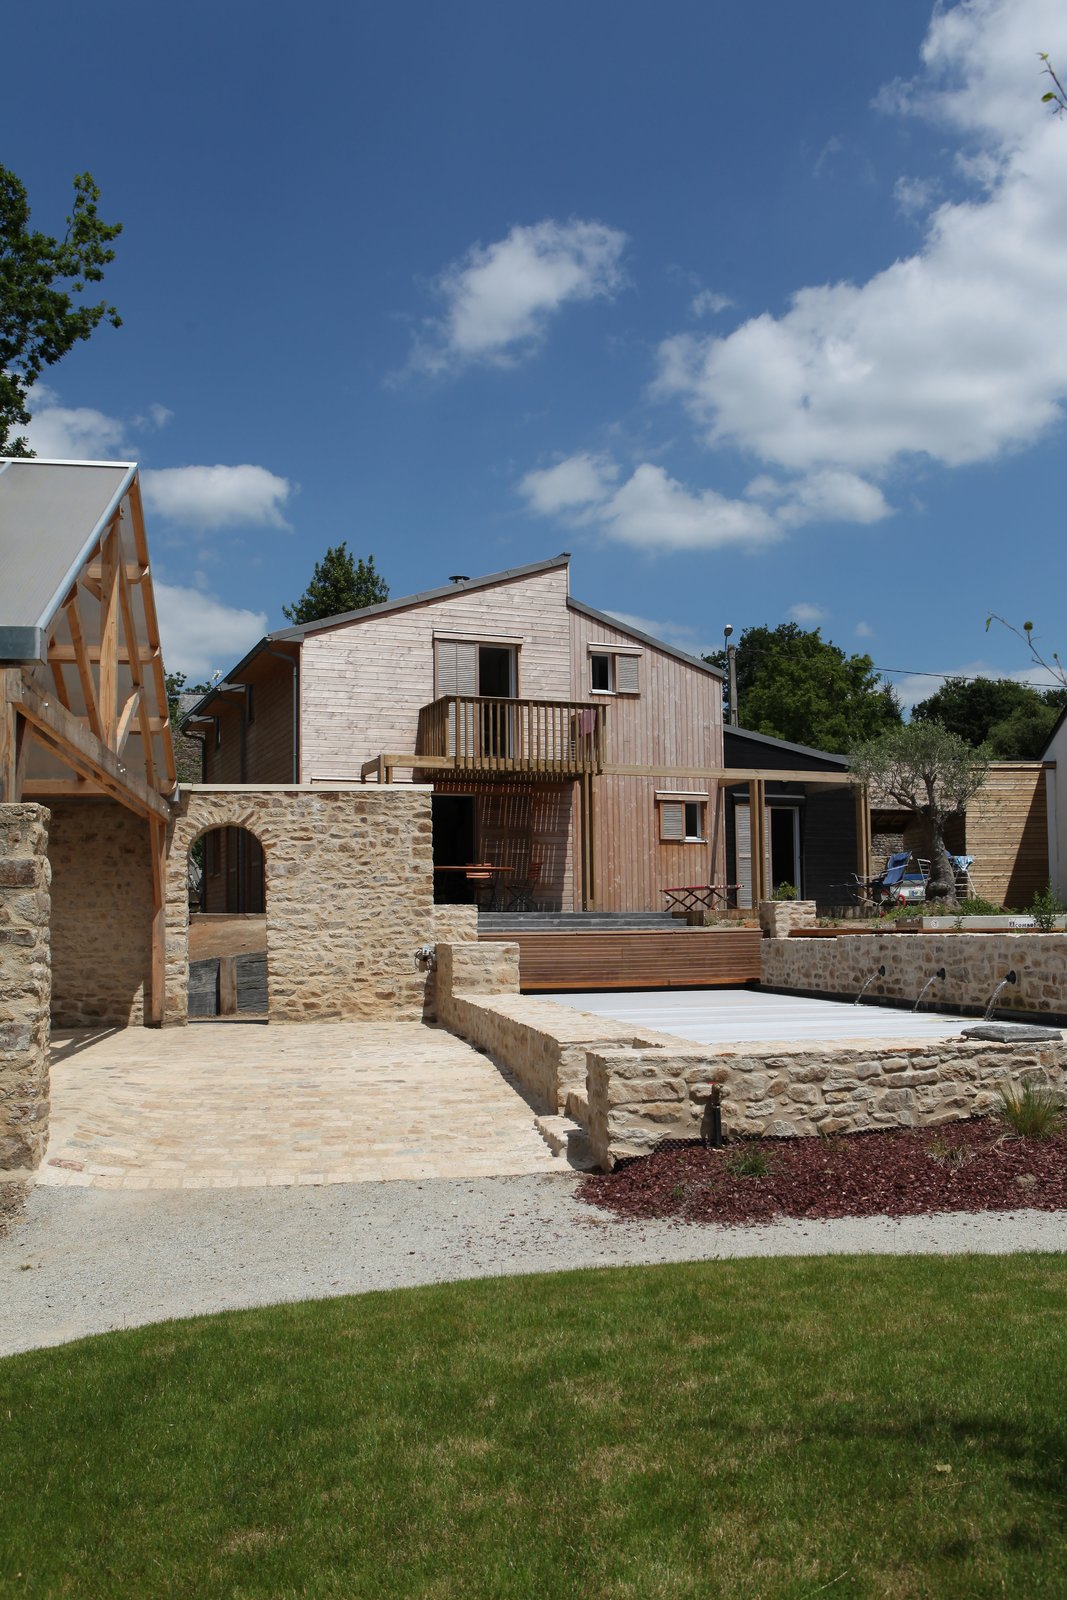 A bioclimatic house in Auray, Brittany  France Patrice Bideau  A bioclimatic house in Auray, Brittany, France by a.typique Patrice Bideau ( 2013 )